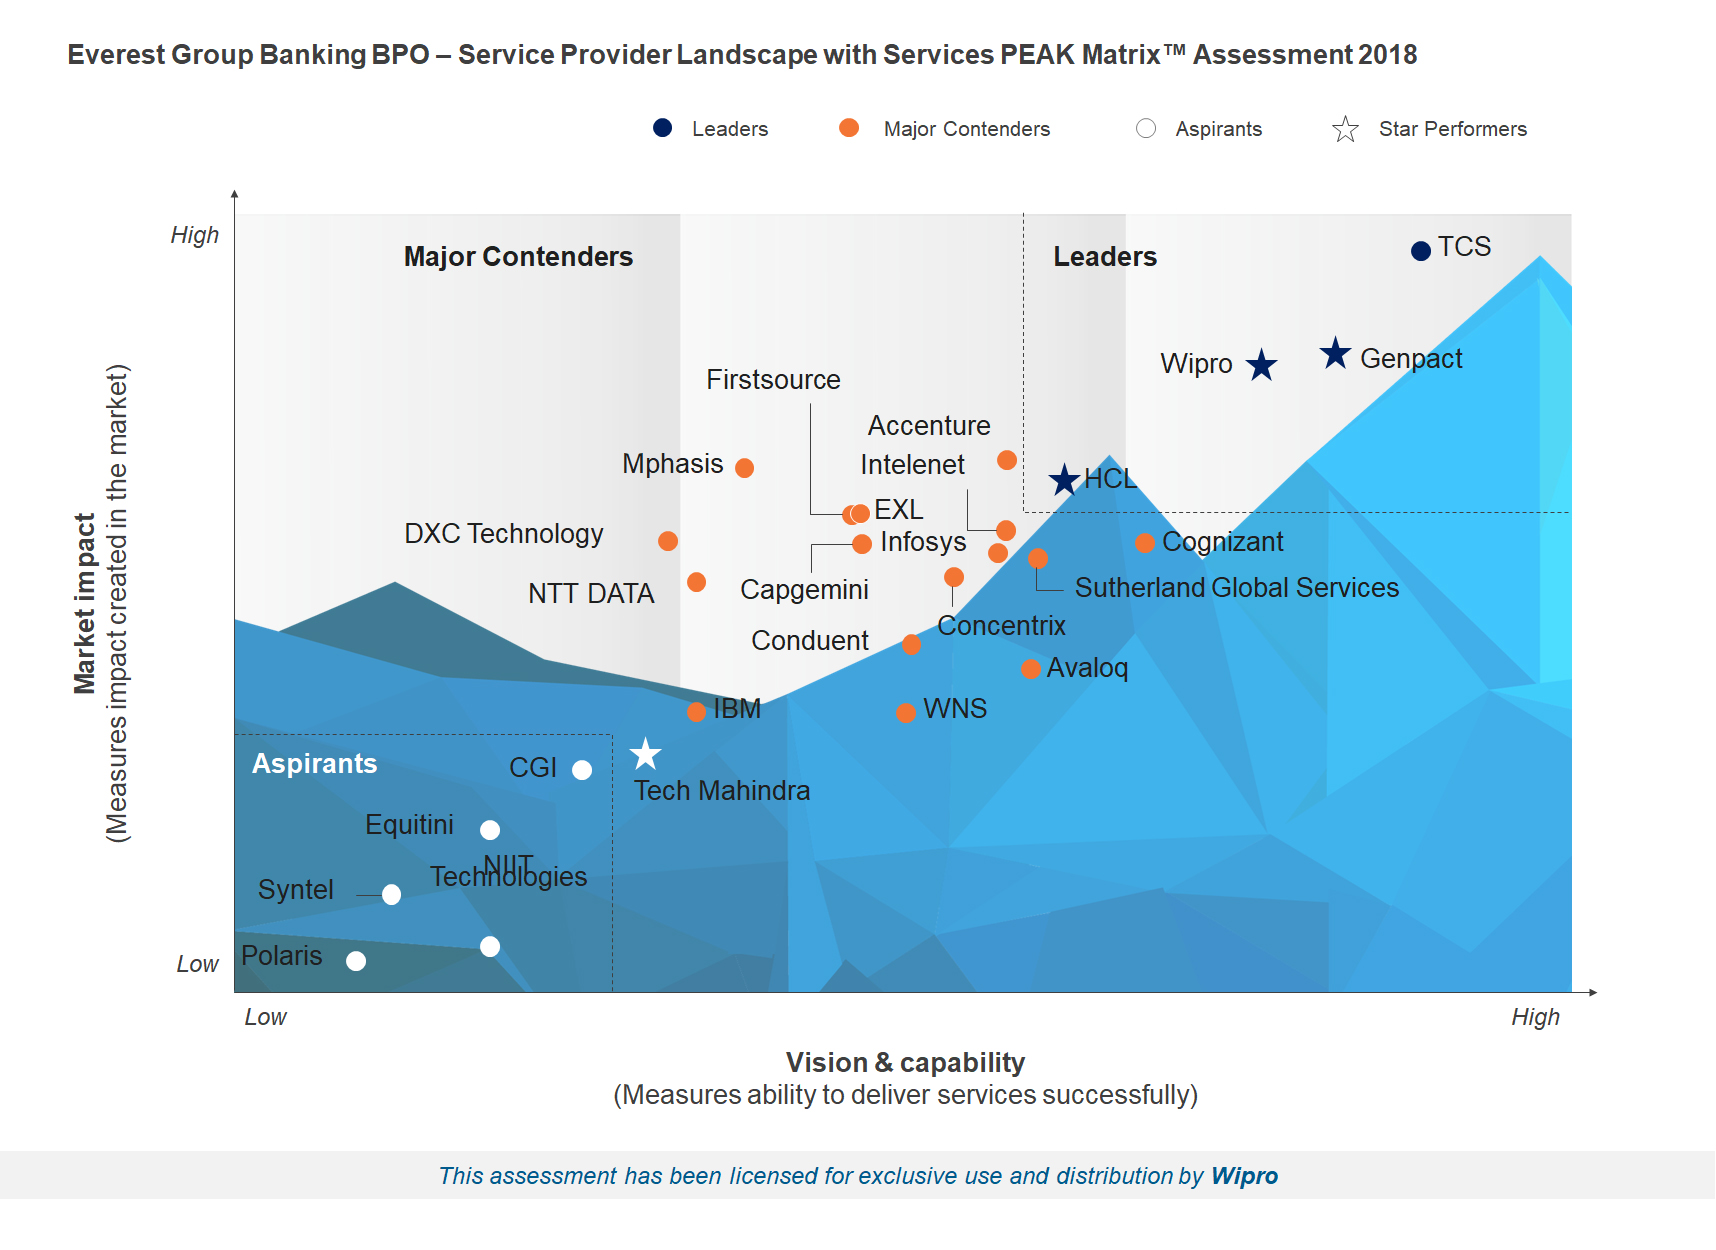 Wipro is a Leader and Star Performer in the Everest Group's Banking BPO – Service Provider Landscape with services PEAK Matrix™ Assessment 2018